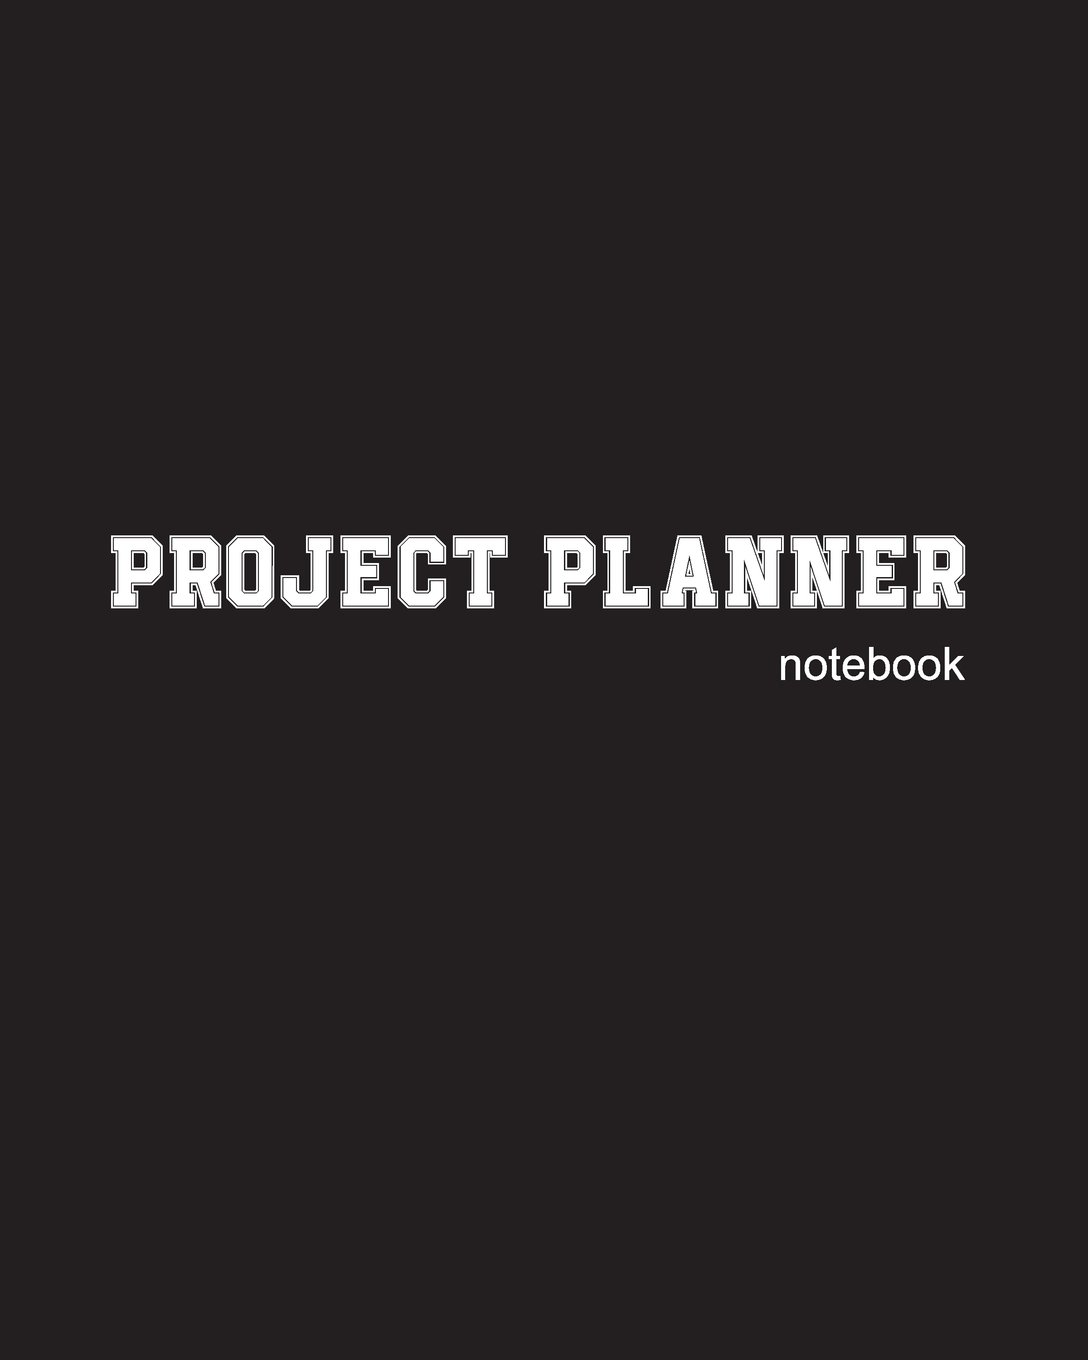 Project Planner Notebook: Project Management Forms Project Management Workbook Project Planner Notebook Organize Notes To Do Ideas Follow Up Black Cover